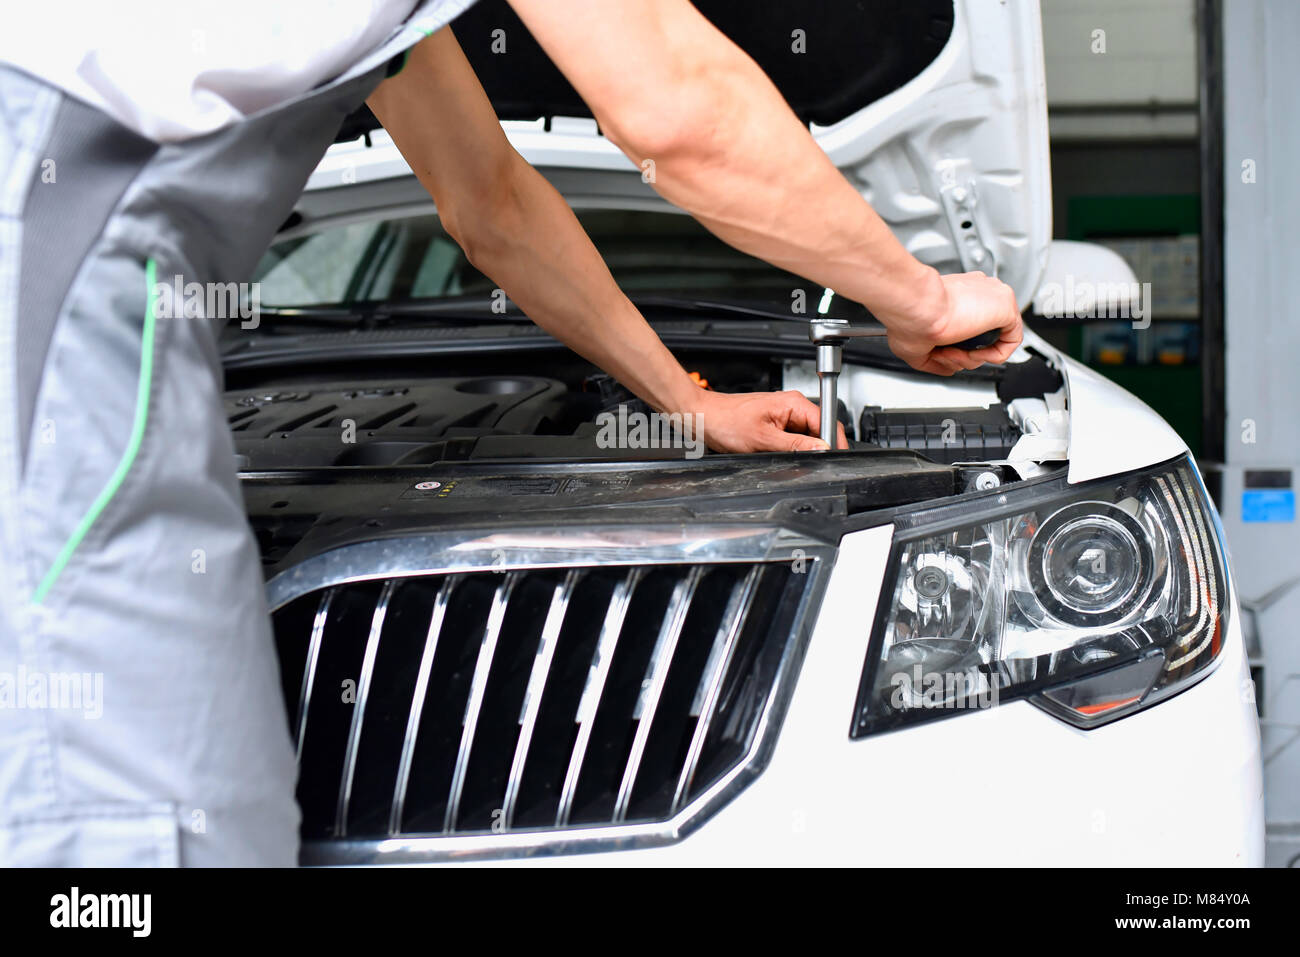 car mechanic in a workshop - closeup engine repair and diagnosis on a vehicle - Stock Image